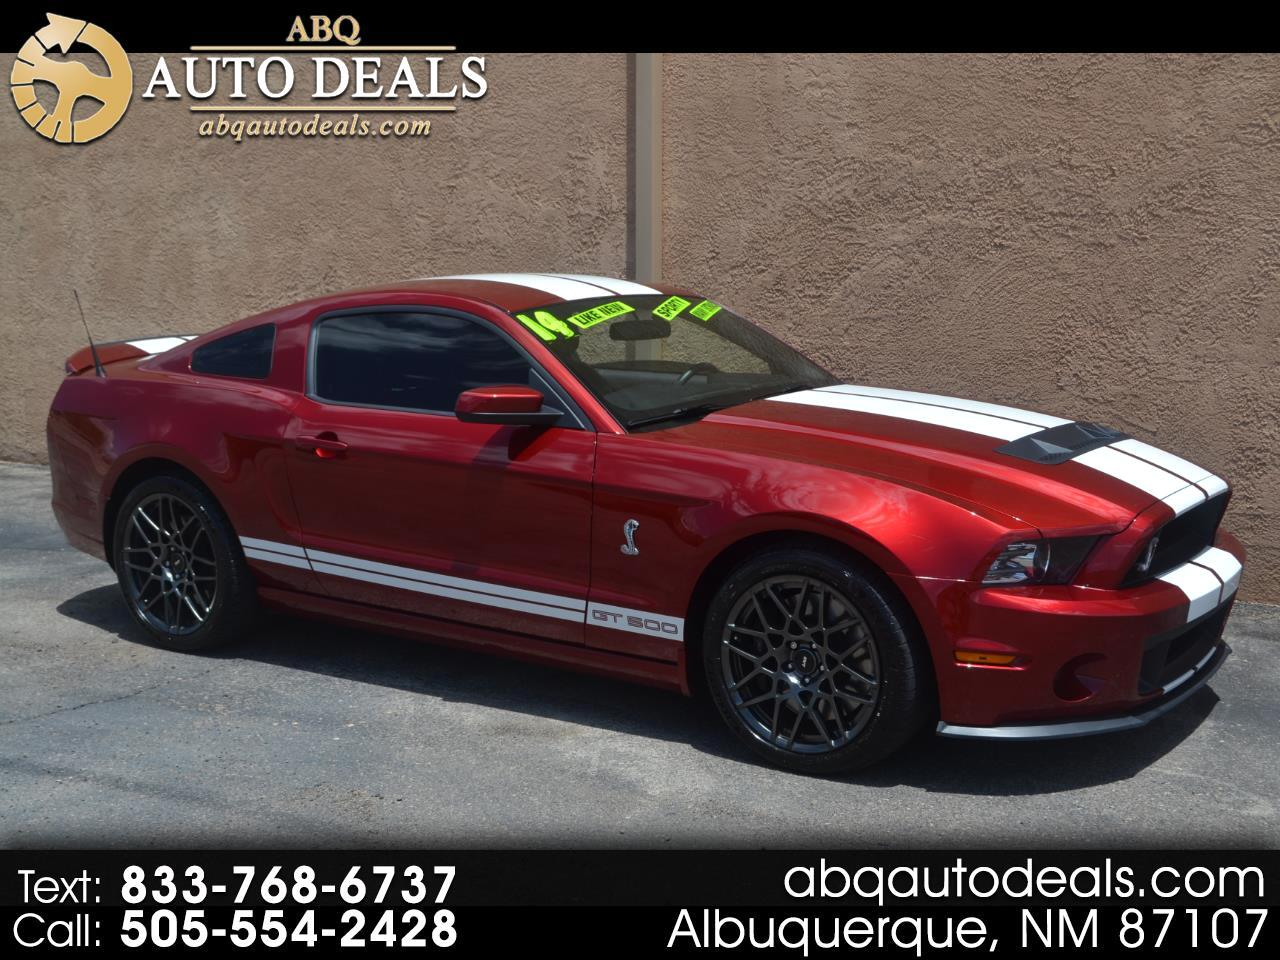 Ford Mustang 2dr Cpe Shelby GT500 2014